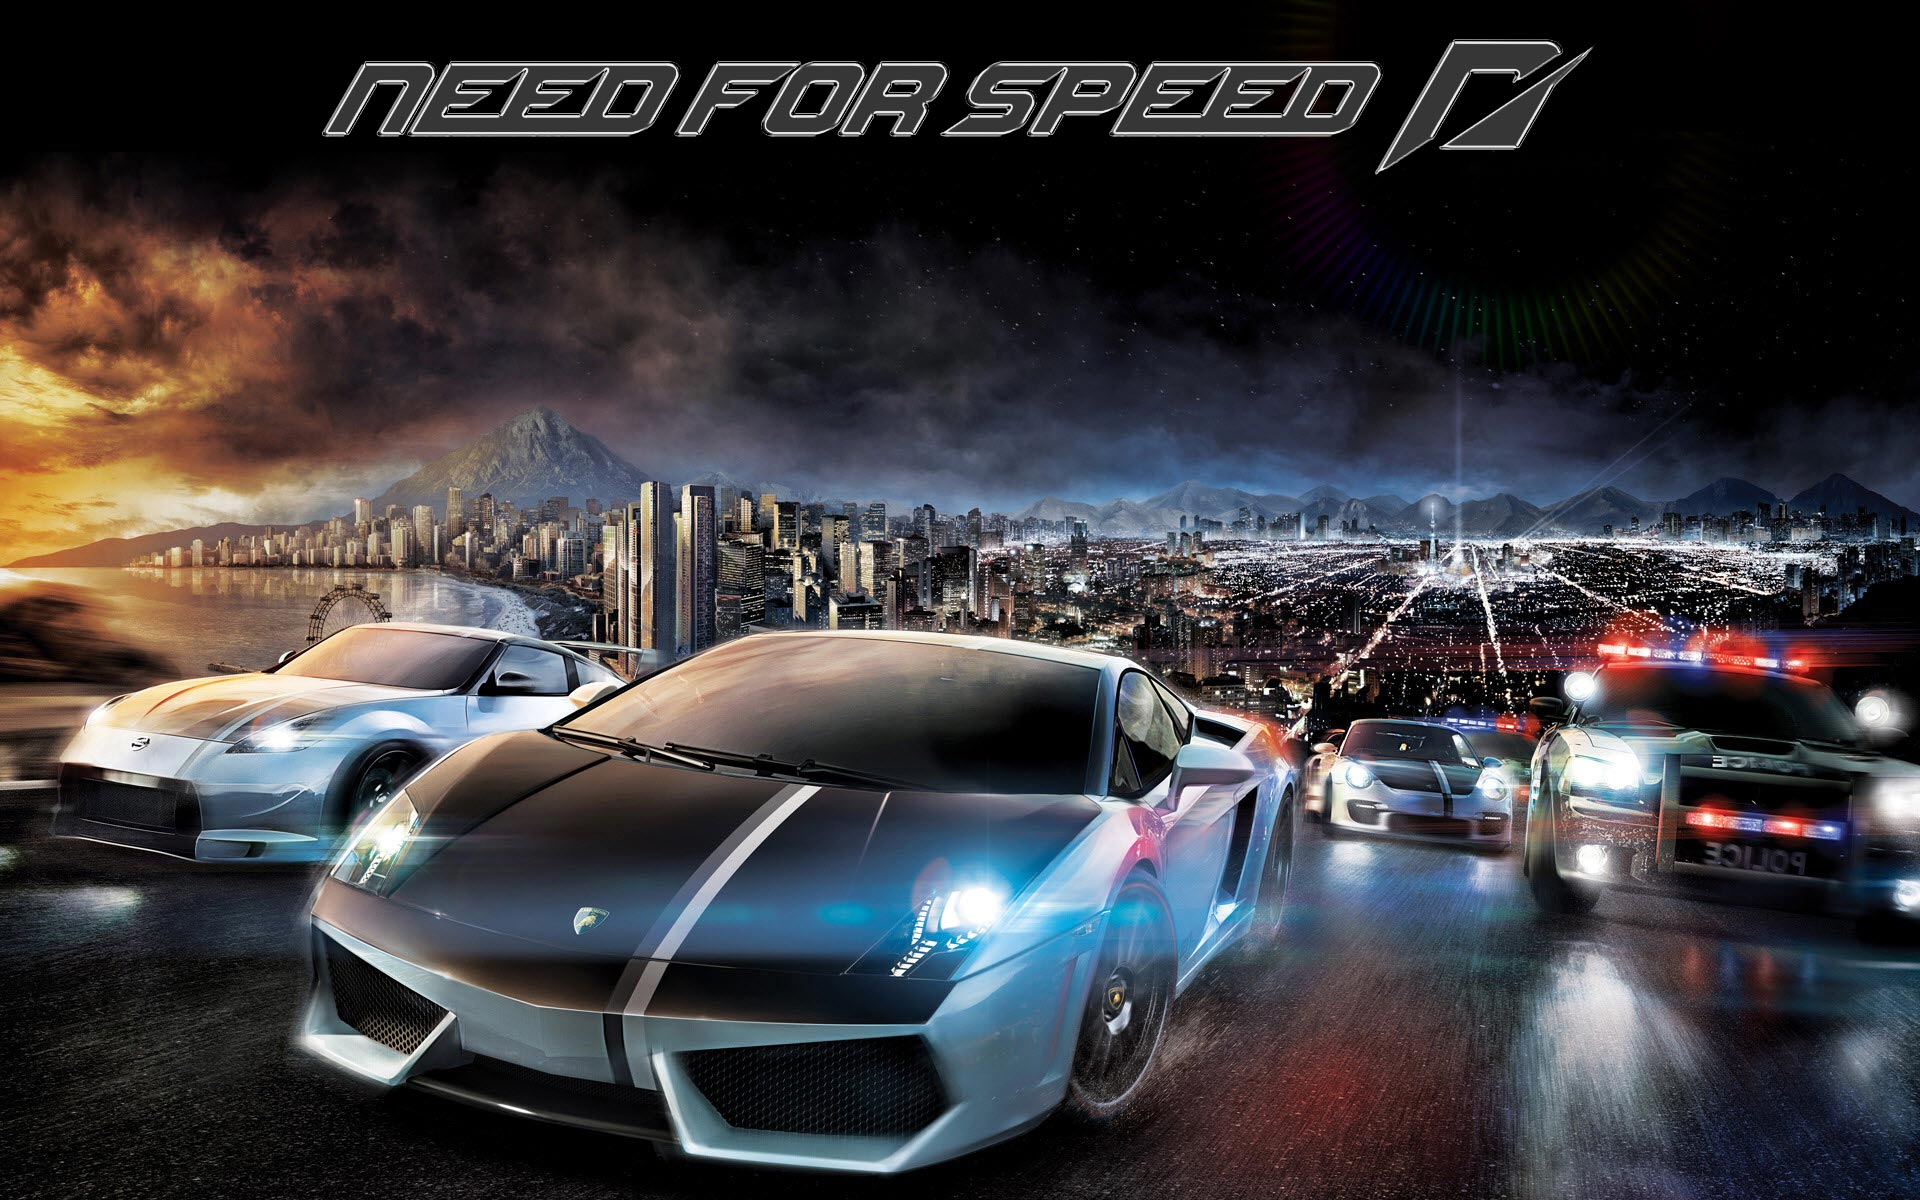 Need For Speed 3D Games Wallpaper HD #9211 Wallpaper | High